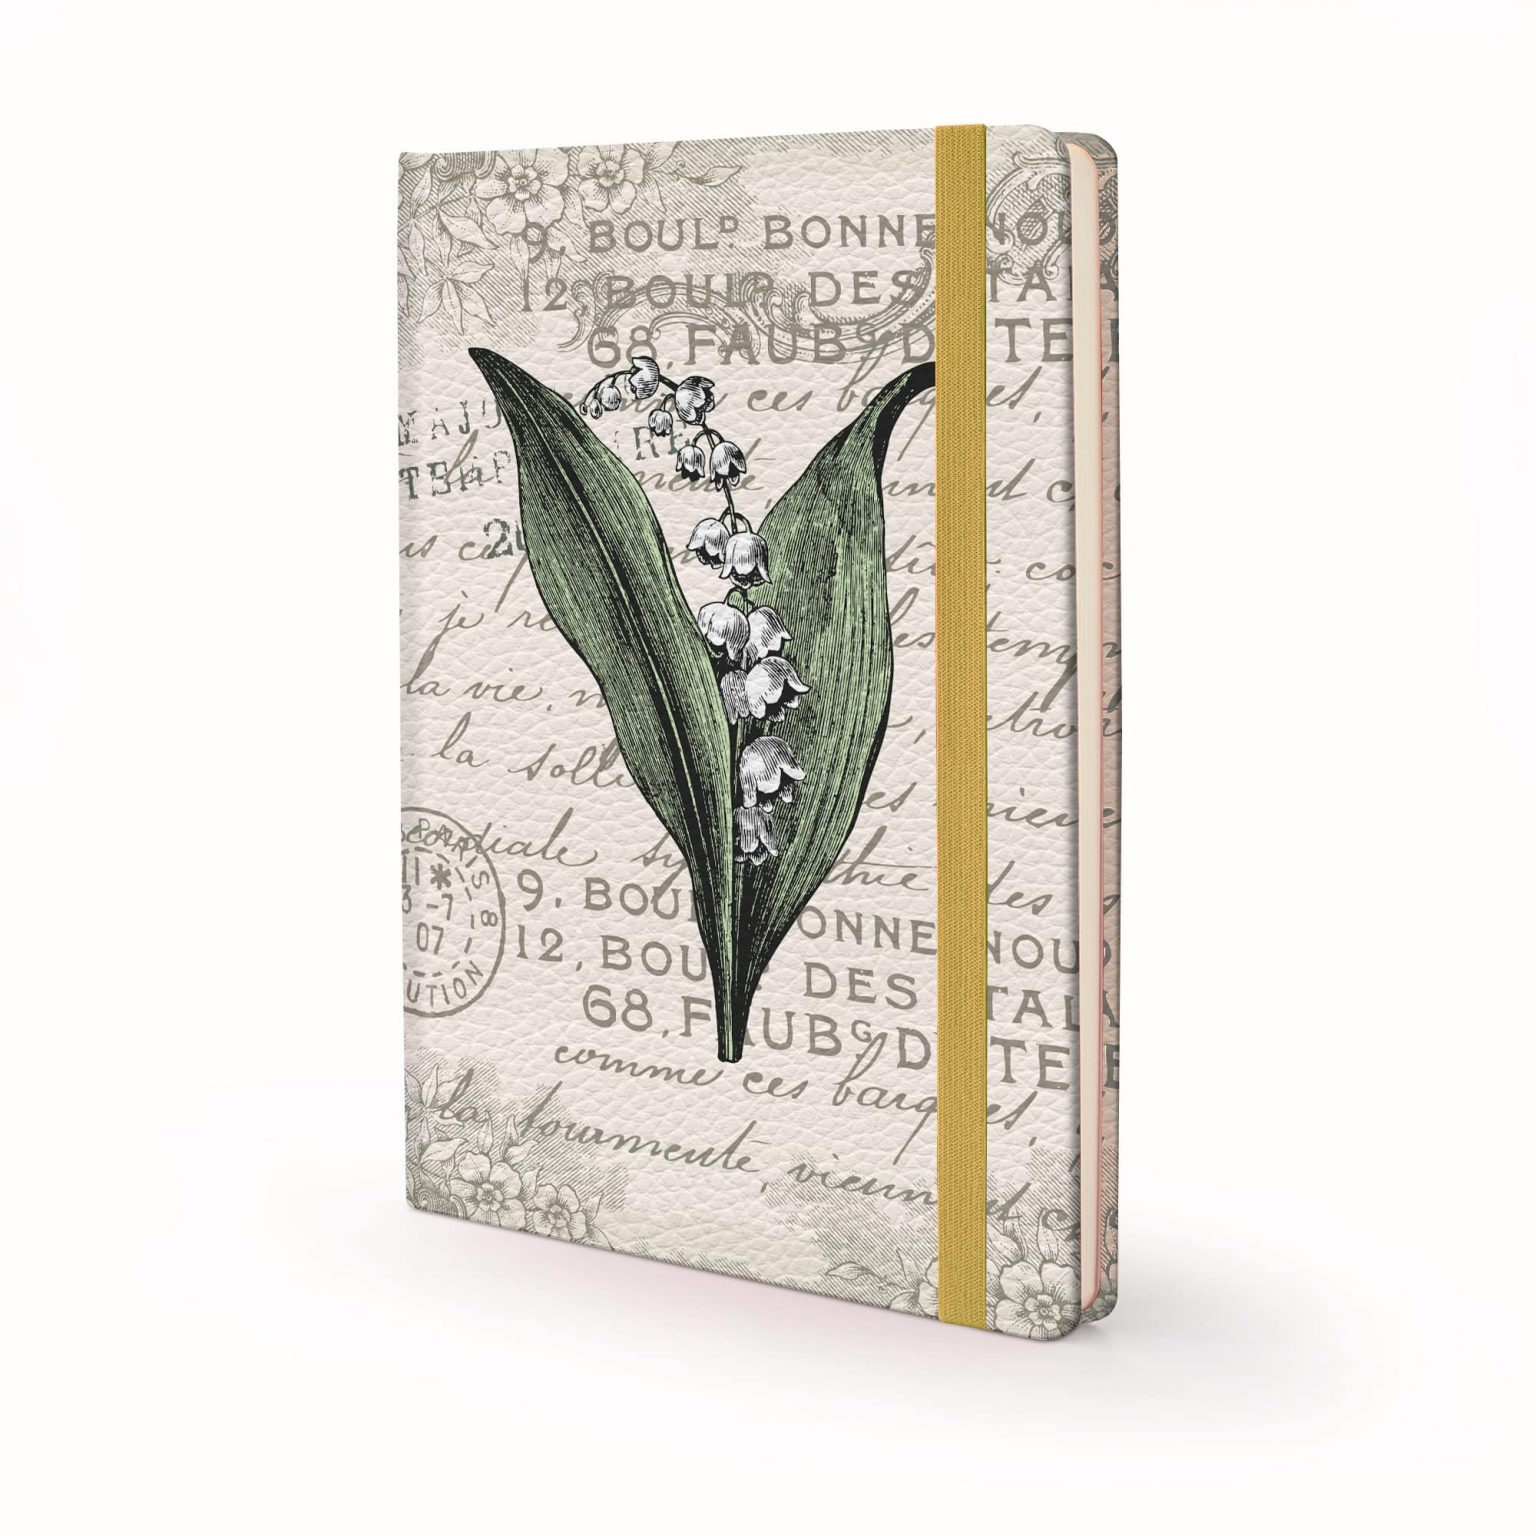 Image shows a Vintage Designed Hardcover Journal